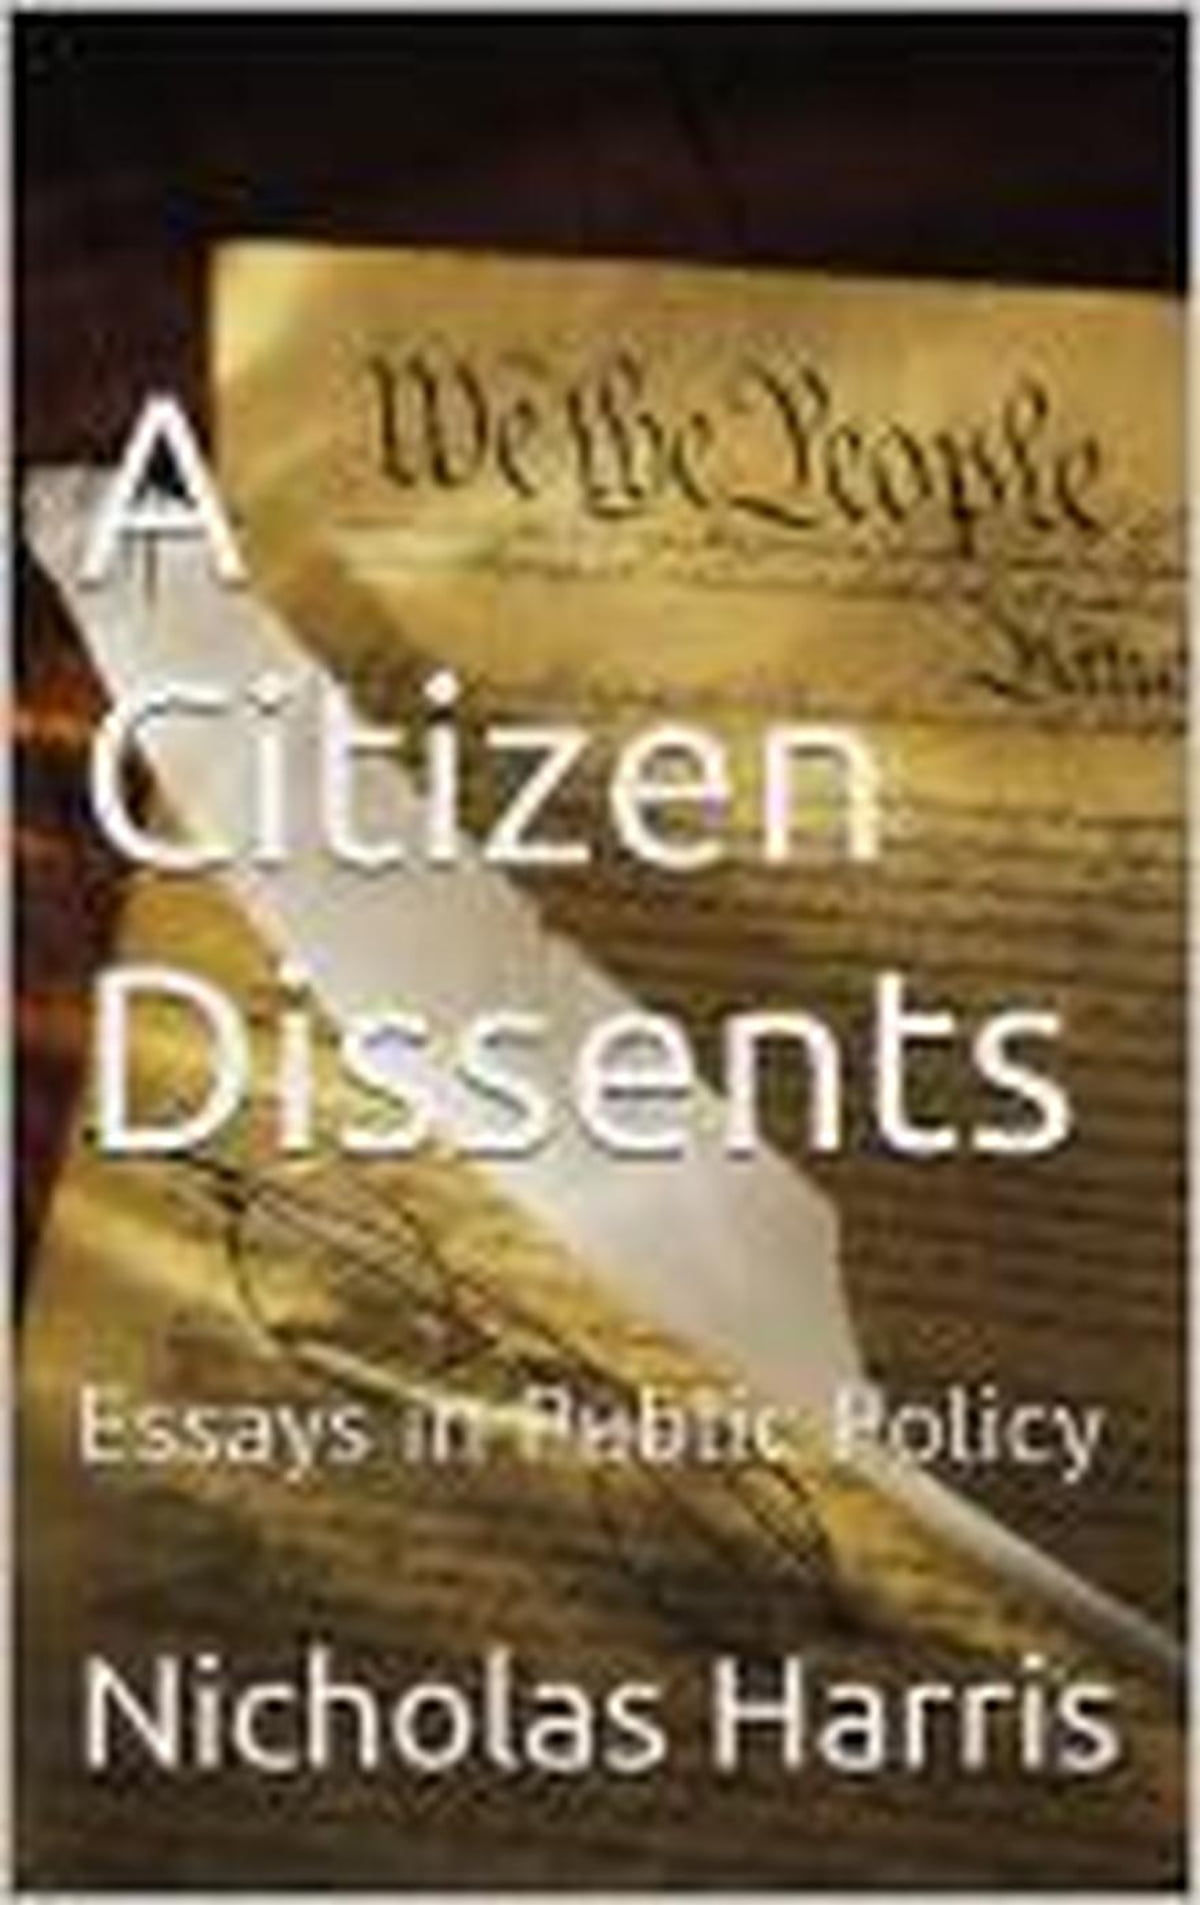 Jane Eyre Essay Thesis A Citizen Dissents Essays In Public Policy Ebook By Nicholas Harris     Rakuten Kobo Essay Papers For Sale also Universal Health Care Essay A Citizen Dissents Essays In Public Policy Ebook By Nicholas Harris  Science And Literature Essay